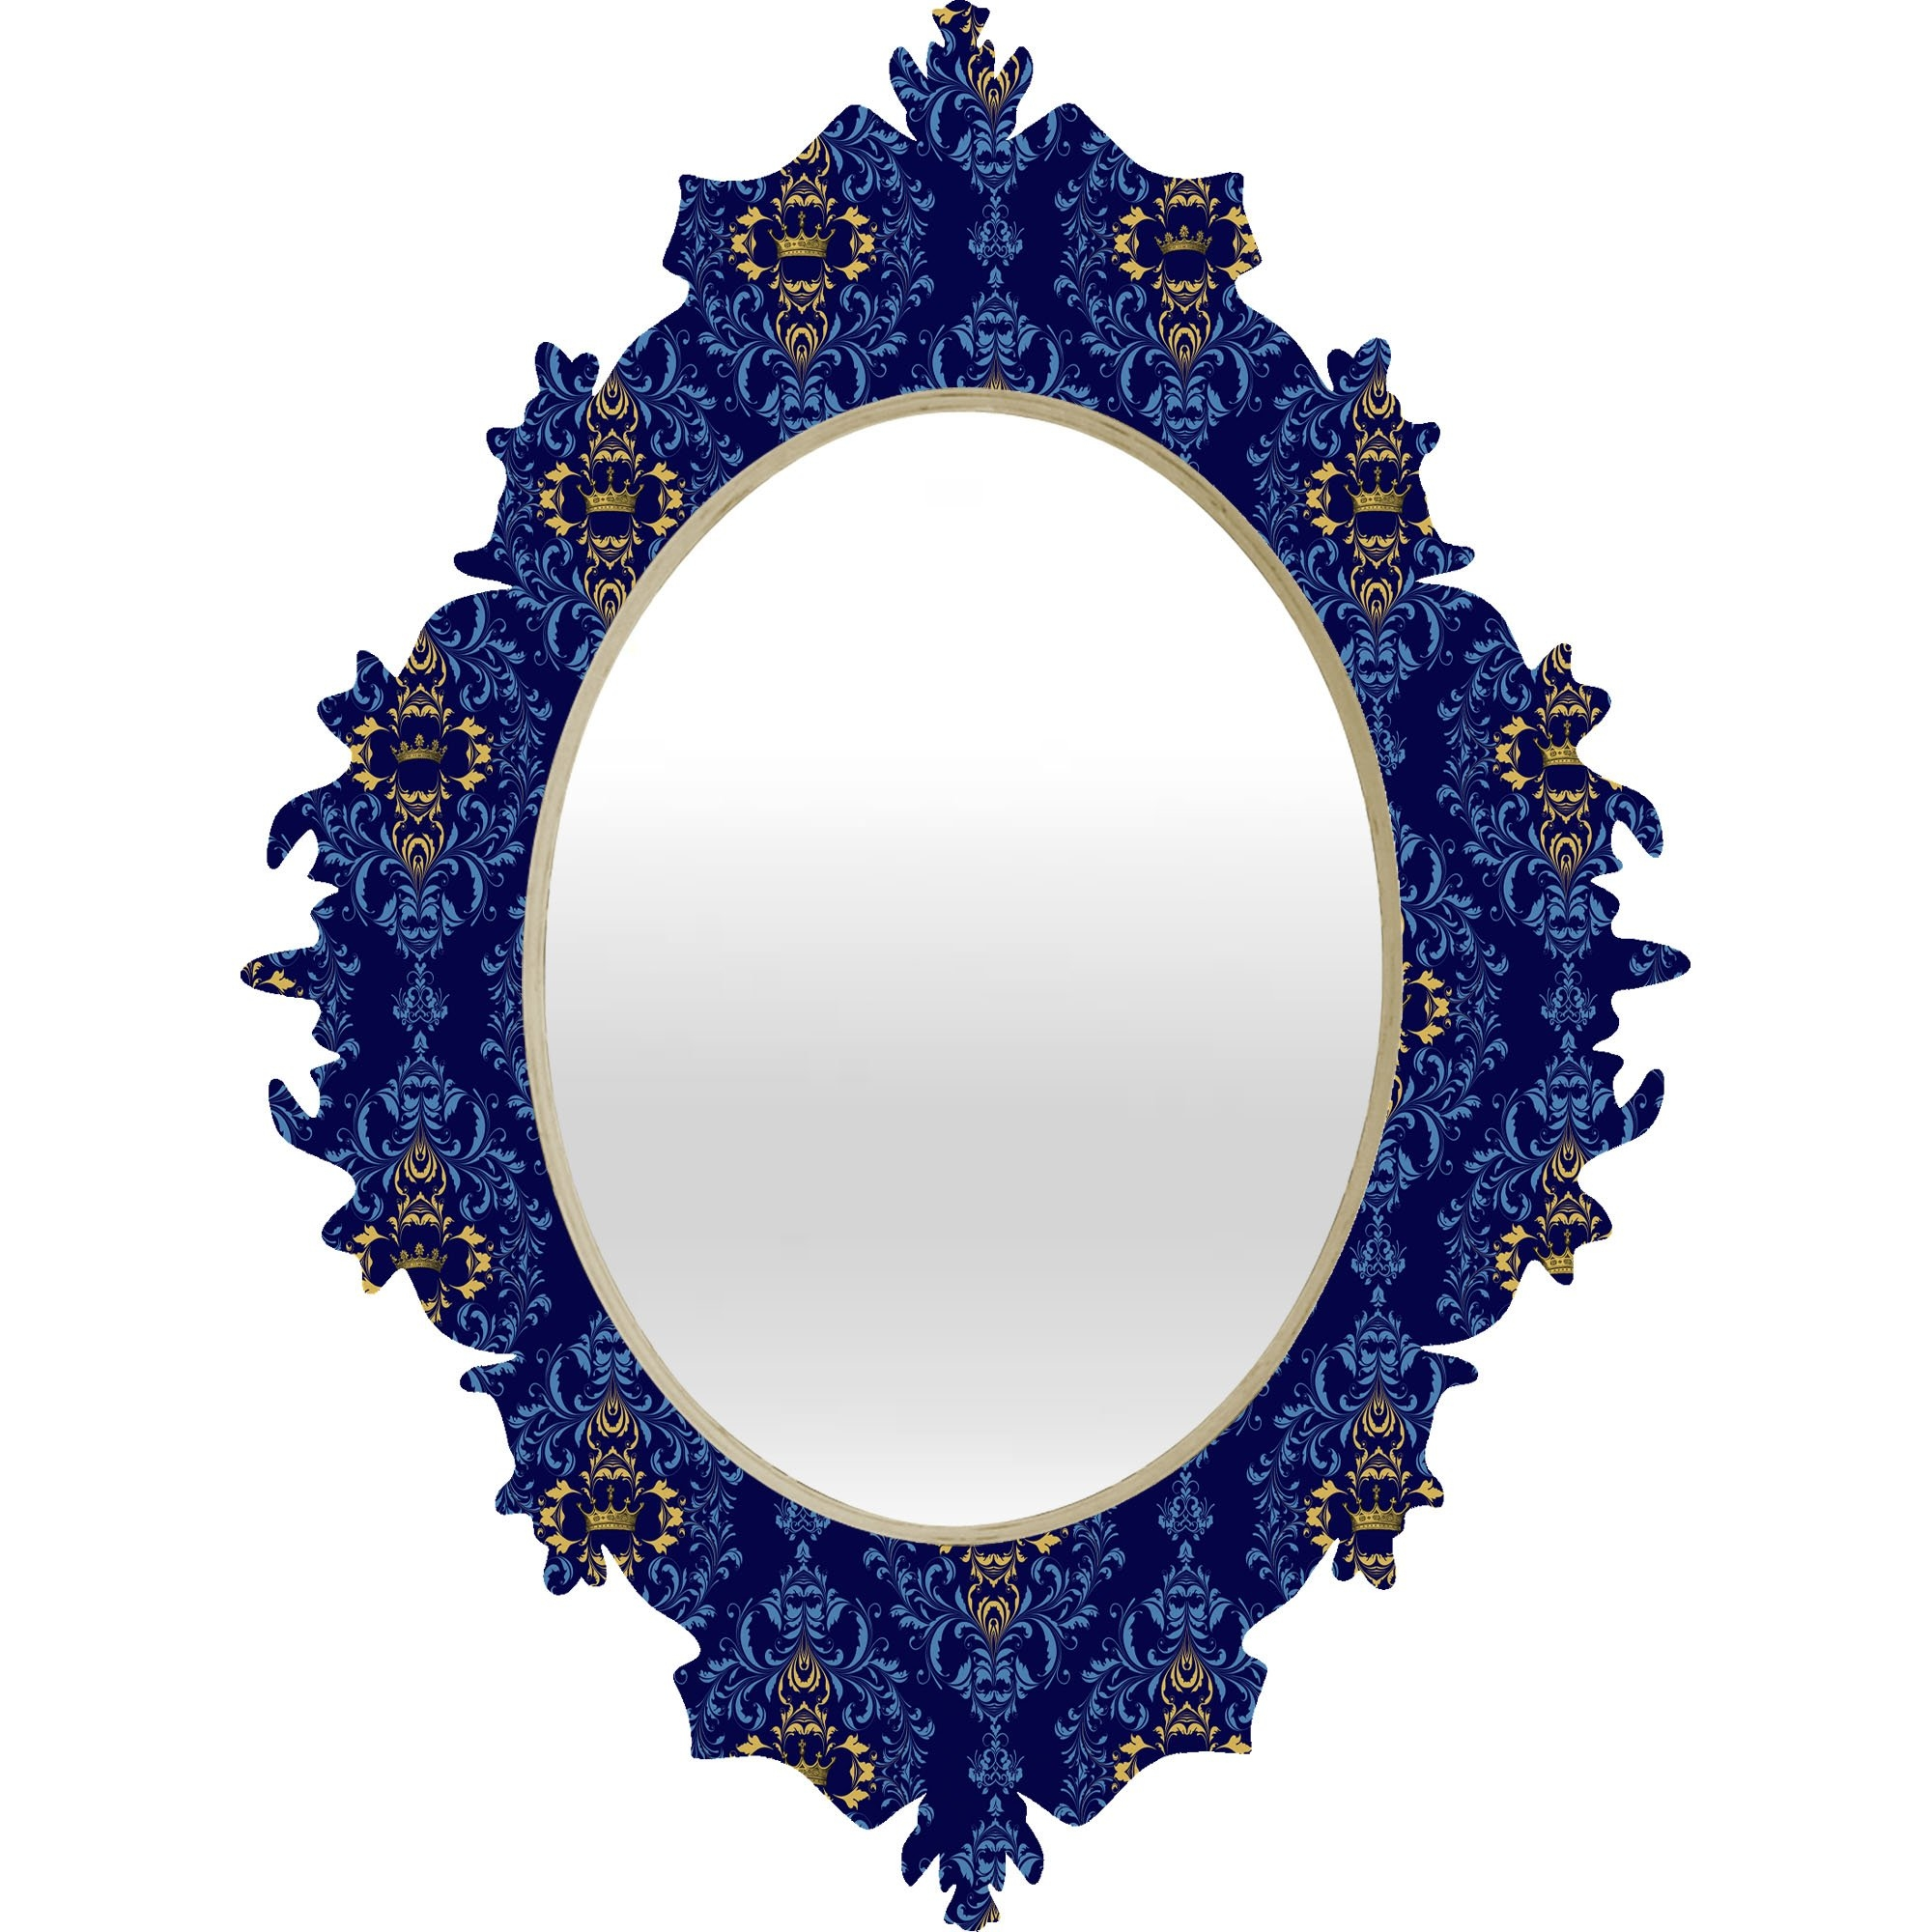 Deny Designs Belle13 Royal Damask Pattern Baroque Mirror Reviews Inside Baroque Mirror Black (Image 10 of 15)